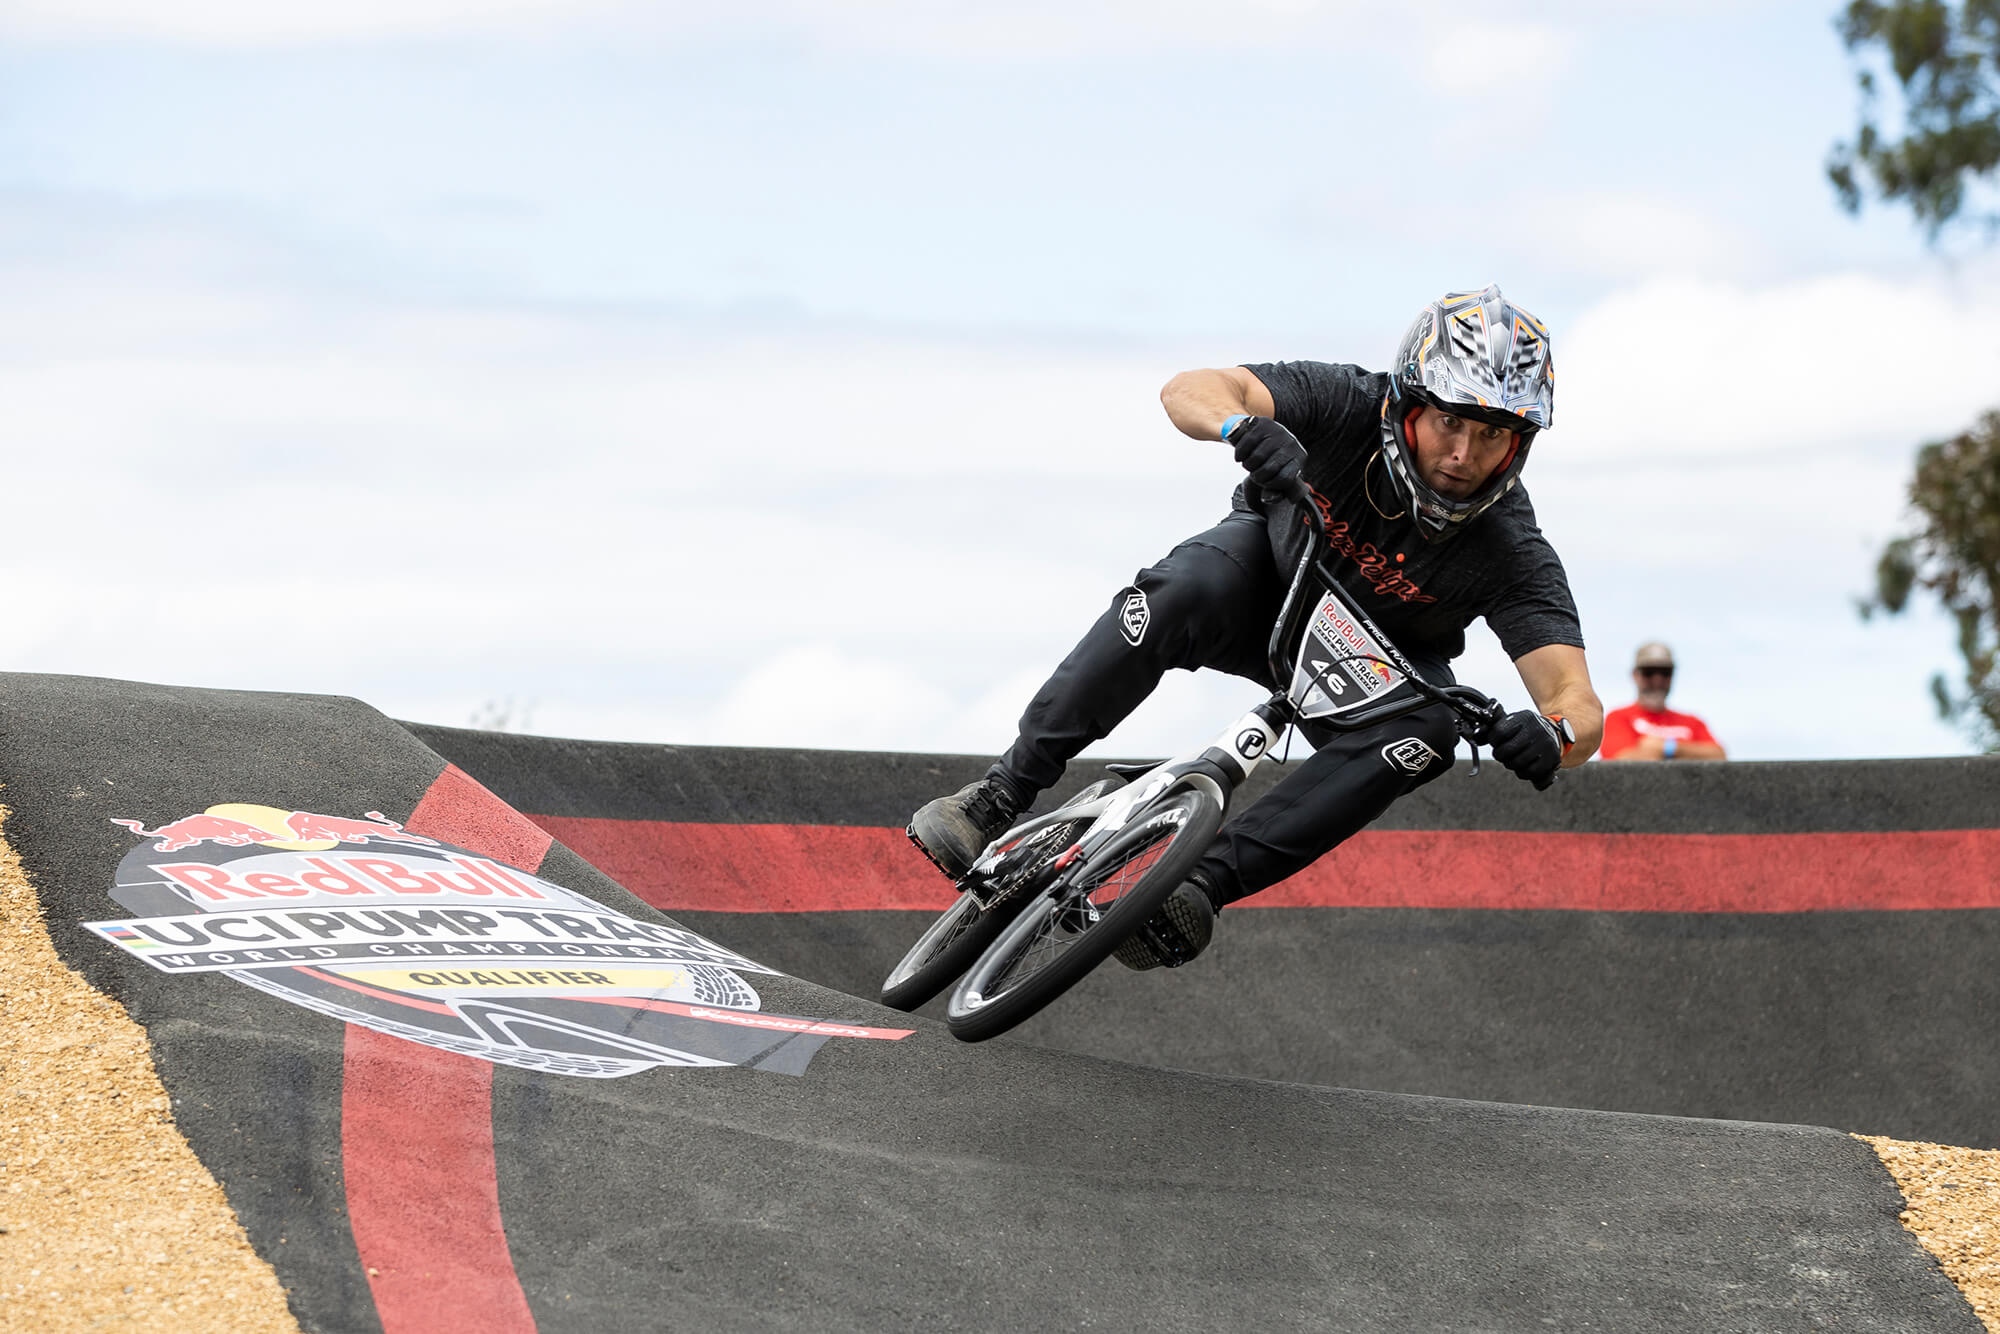 Red Bull Pump Track Cambridge NZ 2021 - Graeme Murray - Michael Bias